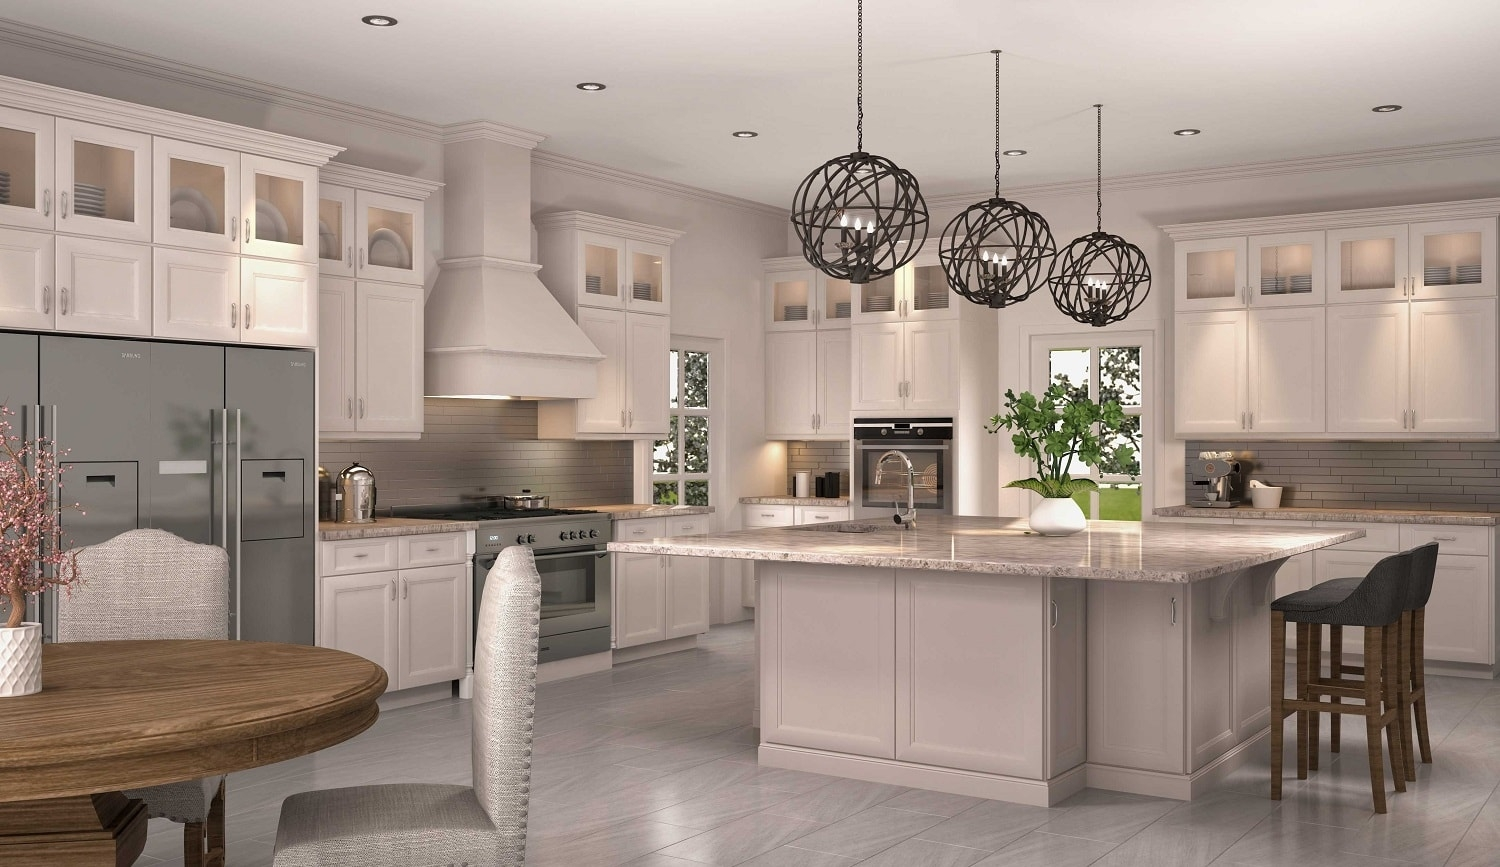 Free Online Kitchen Room Design Tool Willow Lane Cabinetry